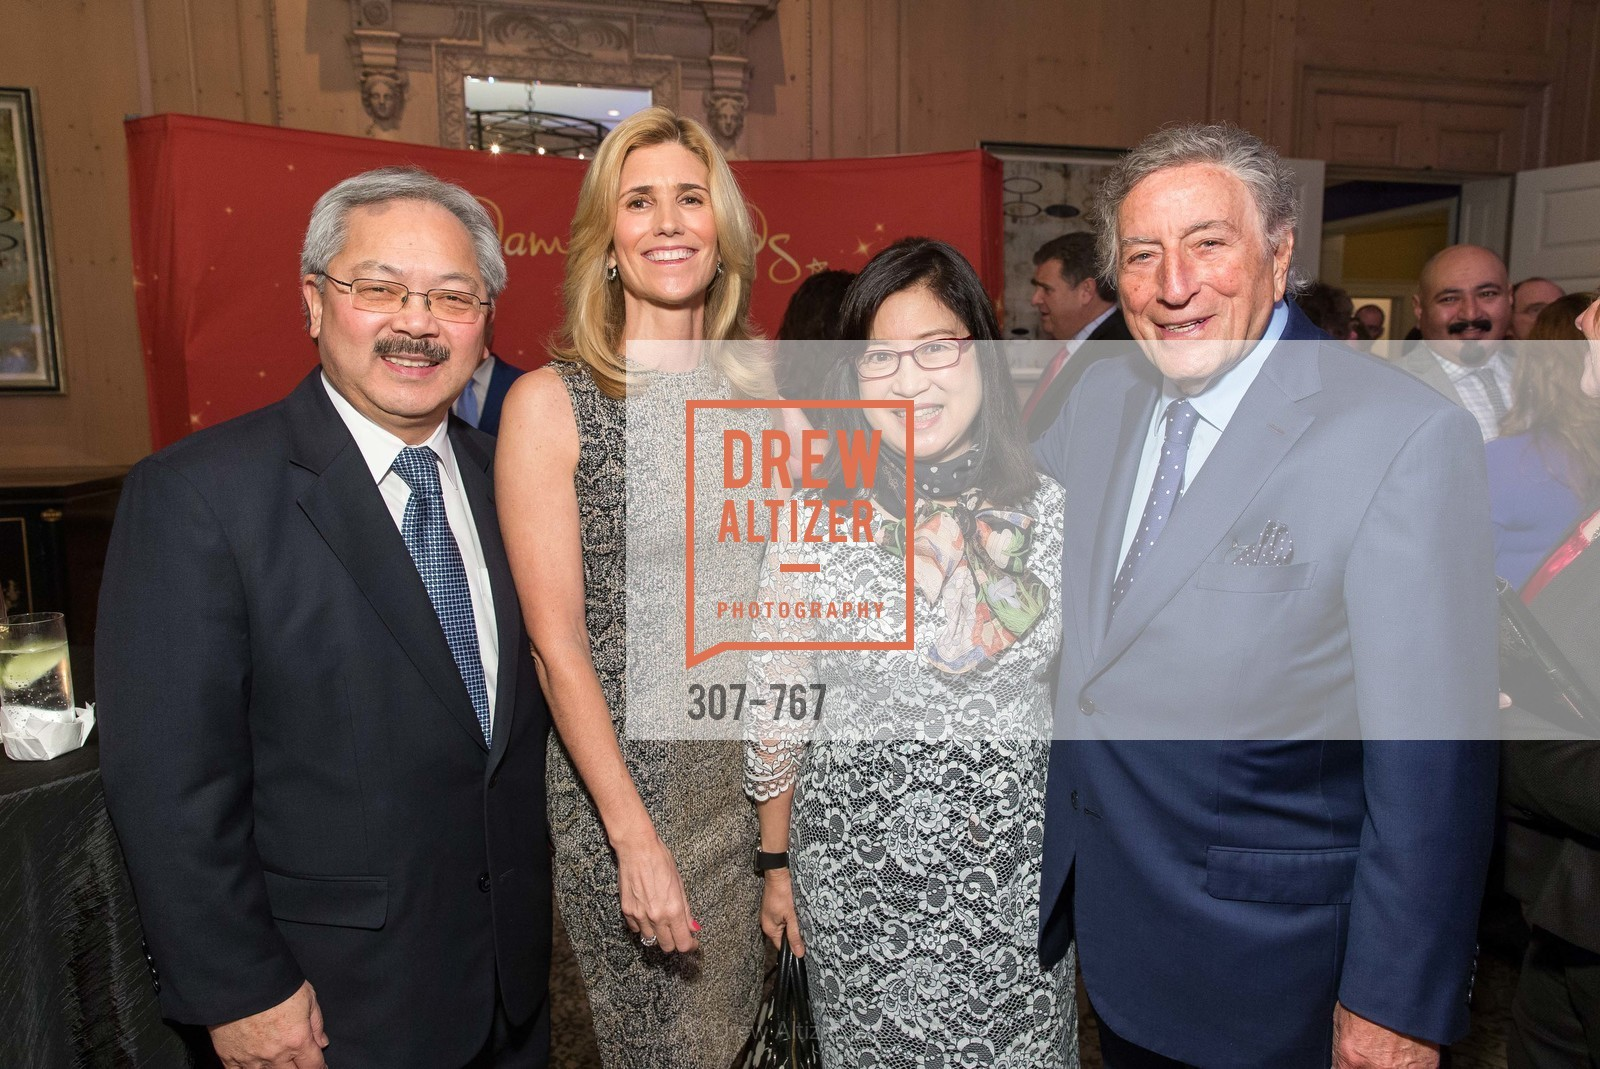 Ed Lee, Susan Benedetto, Anita Lee, Tony Bennett, A Special Reception with Tony Bennett, The Fairmont, San Francisco, The Penthouse Suite, January 26th, 2016,Drew Altizer, Drew Altizer Photography, full-service agency, private events, San Francisco photographer, photographer california